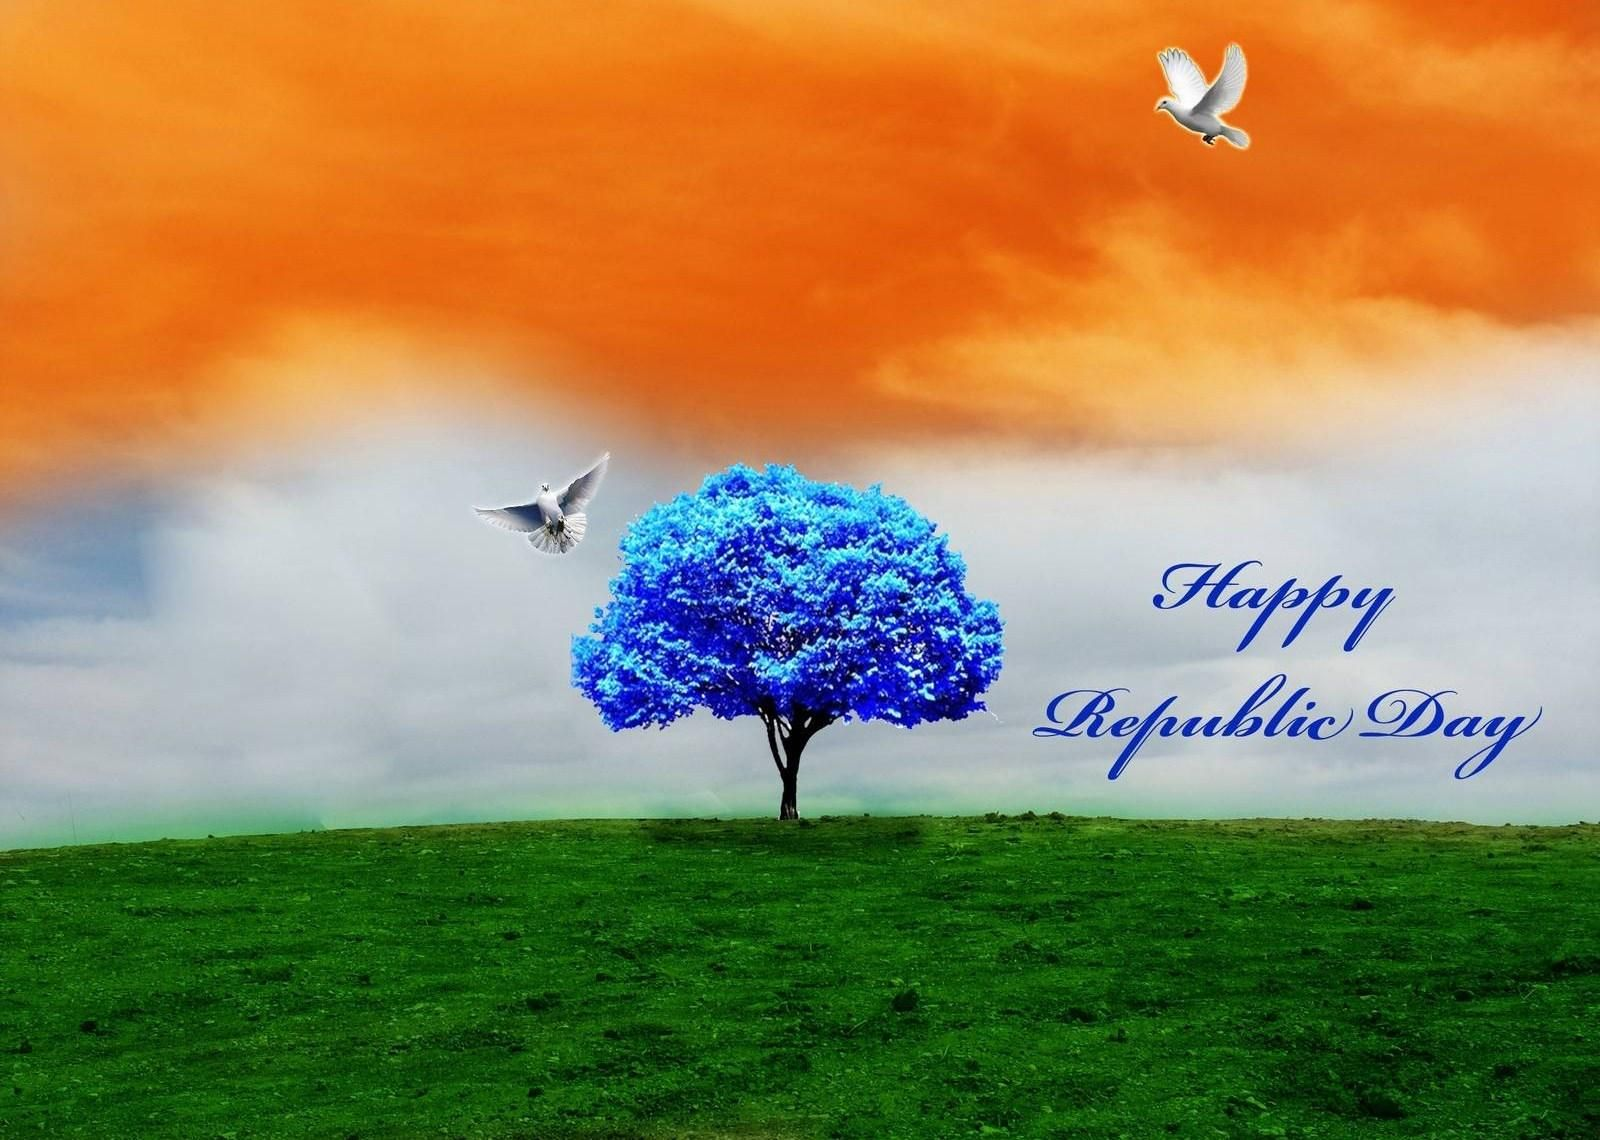 Hd India Wallpapers The Best And The Most Attractive Indian 700 525 Indian Wallp Republic Day India Republic Day Images Pictures Republic Day Indian